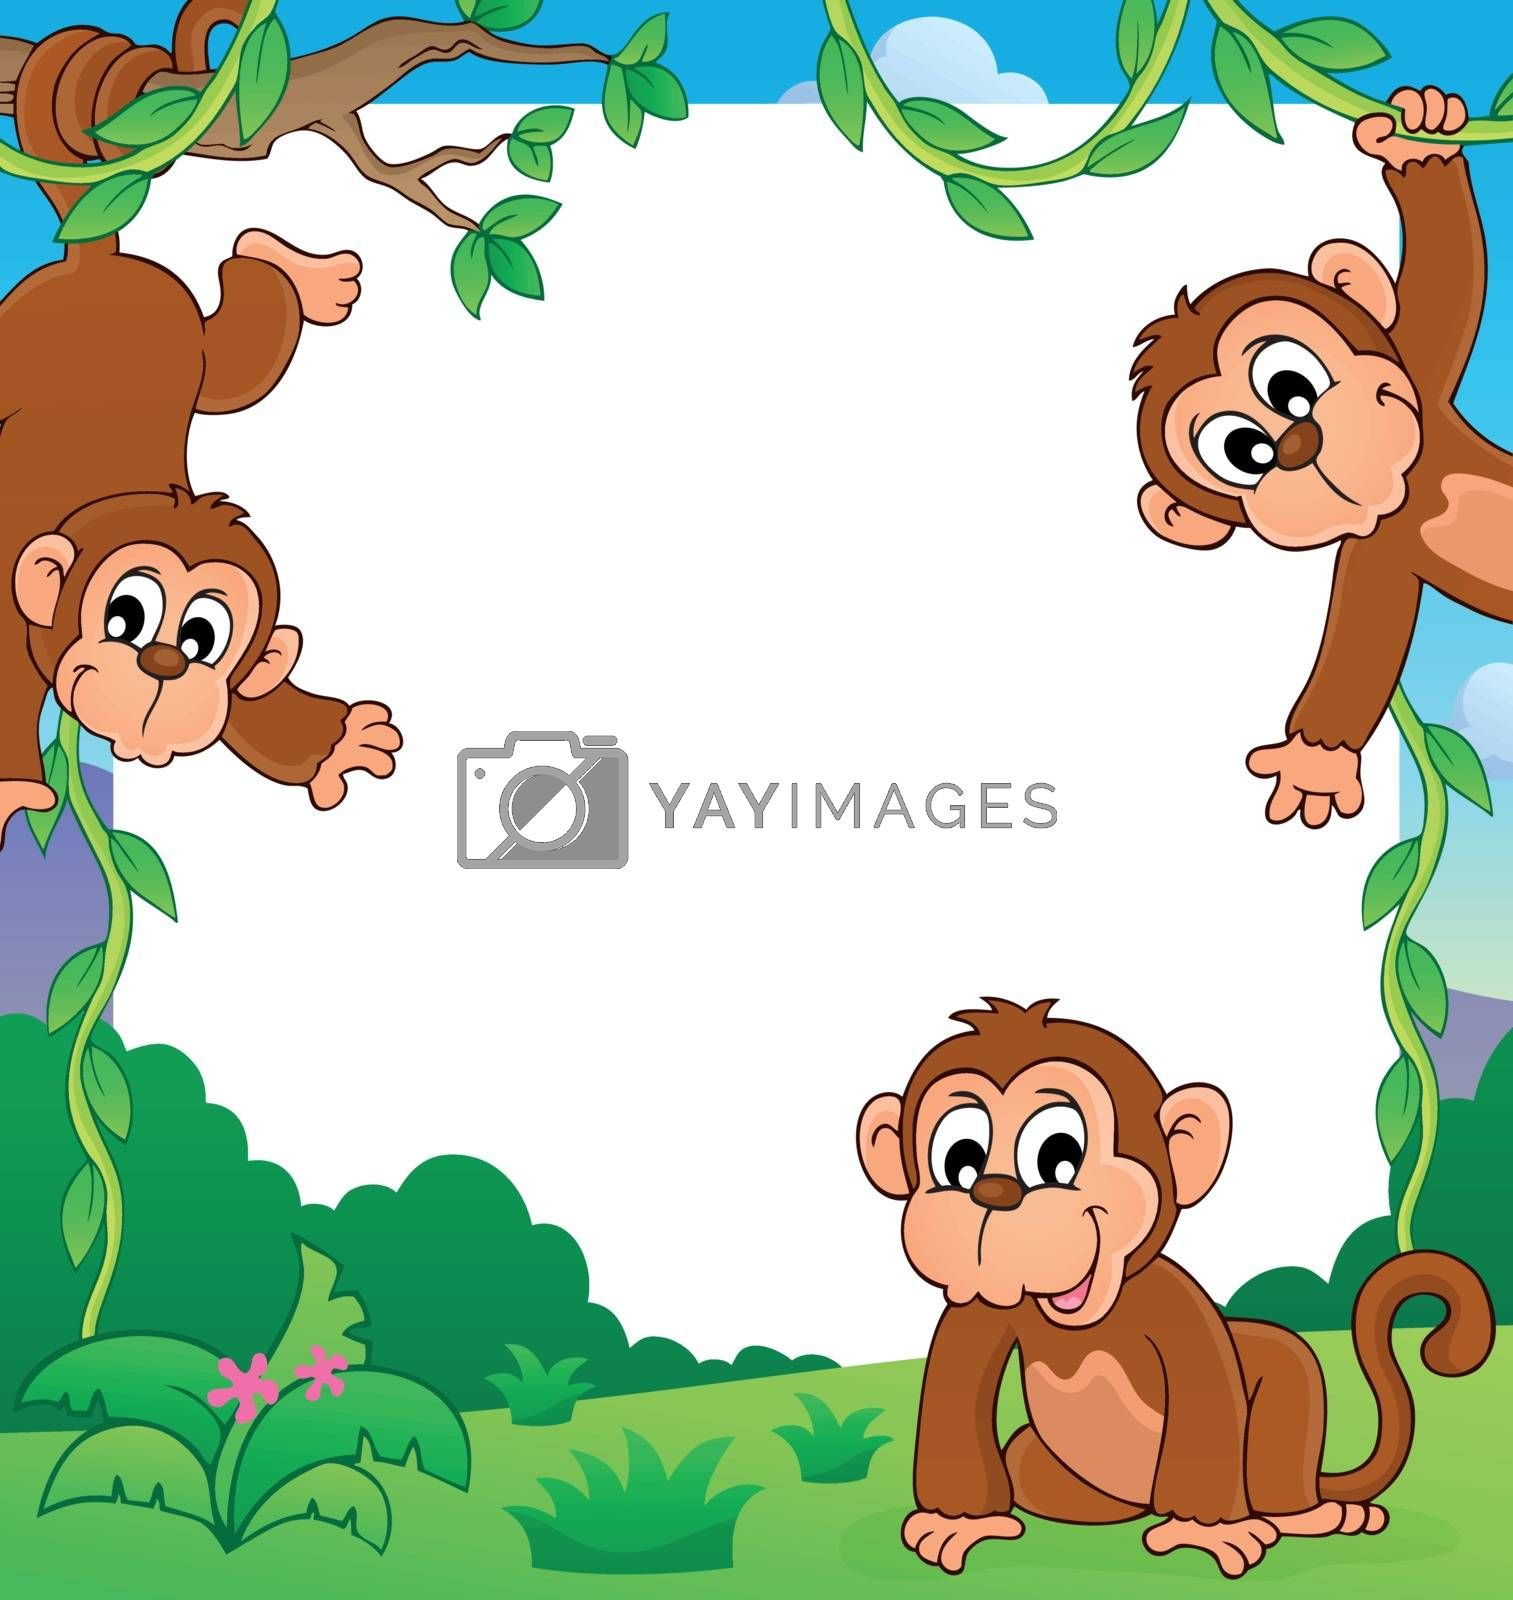 Royalty free image of Monkey thematic frame 1 by clairev